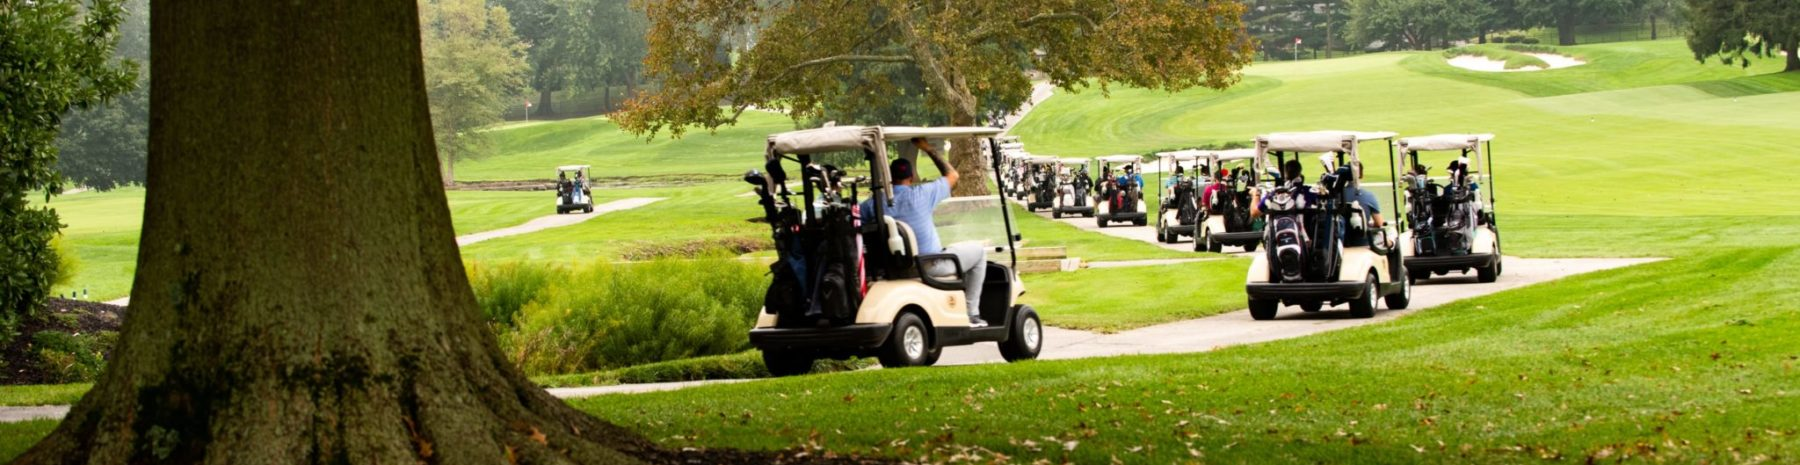 2018 Golf Outing Foursomes 16